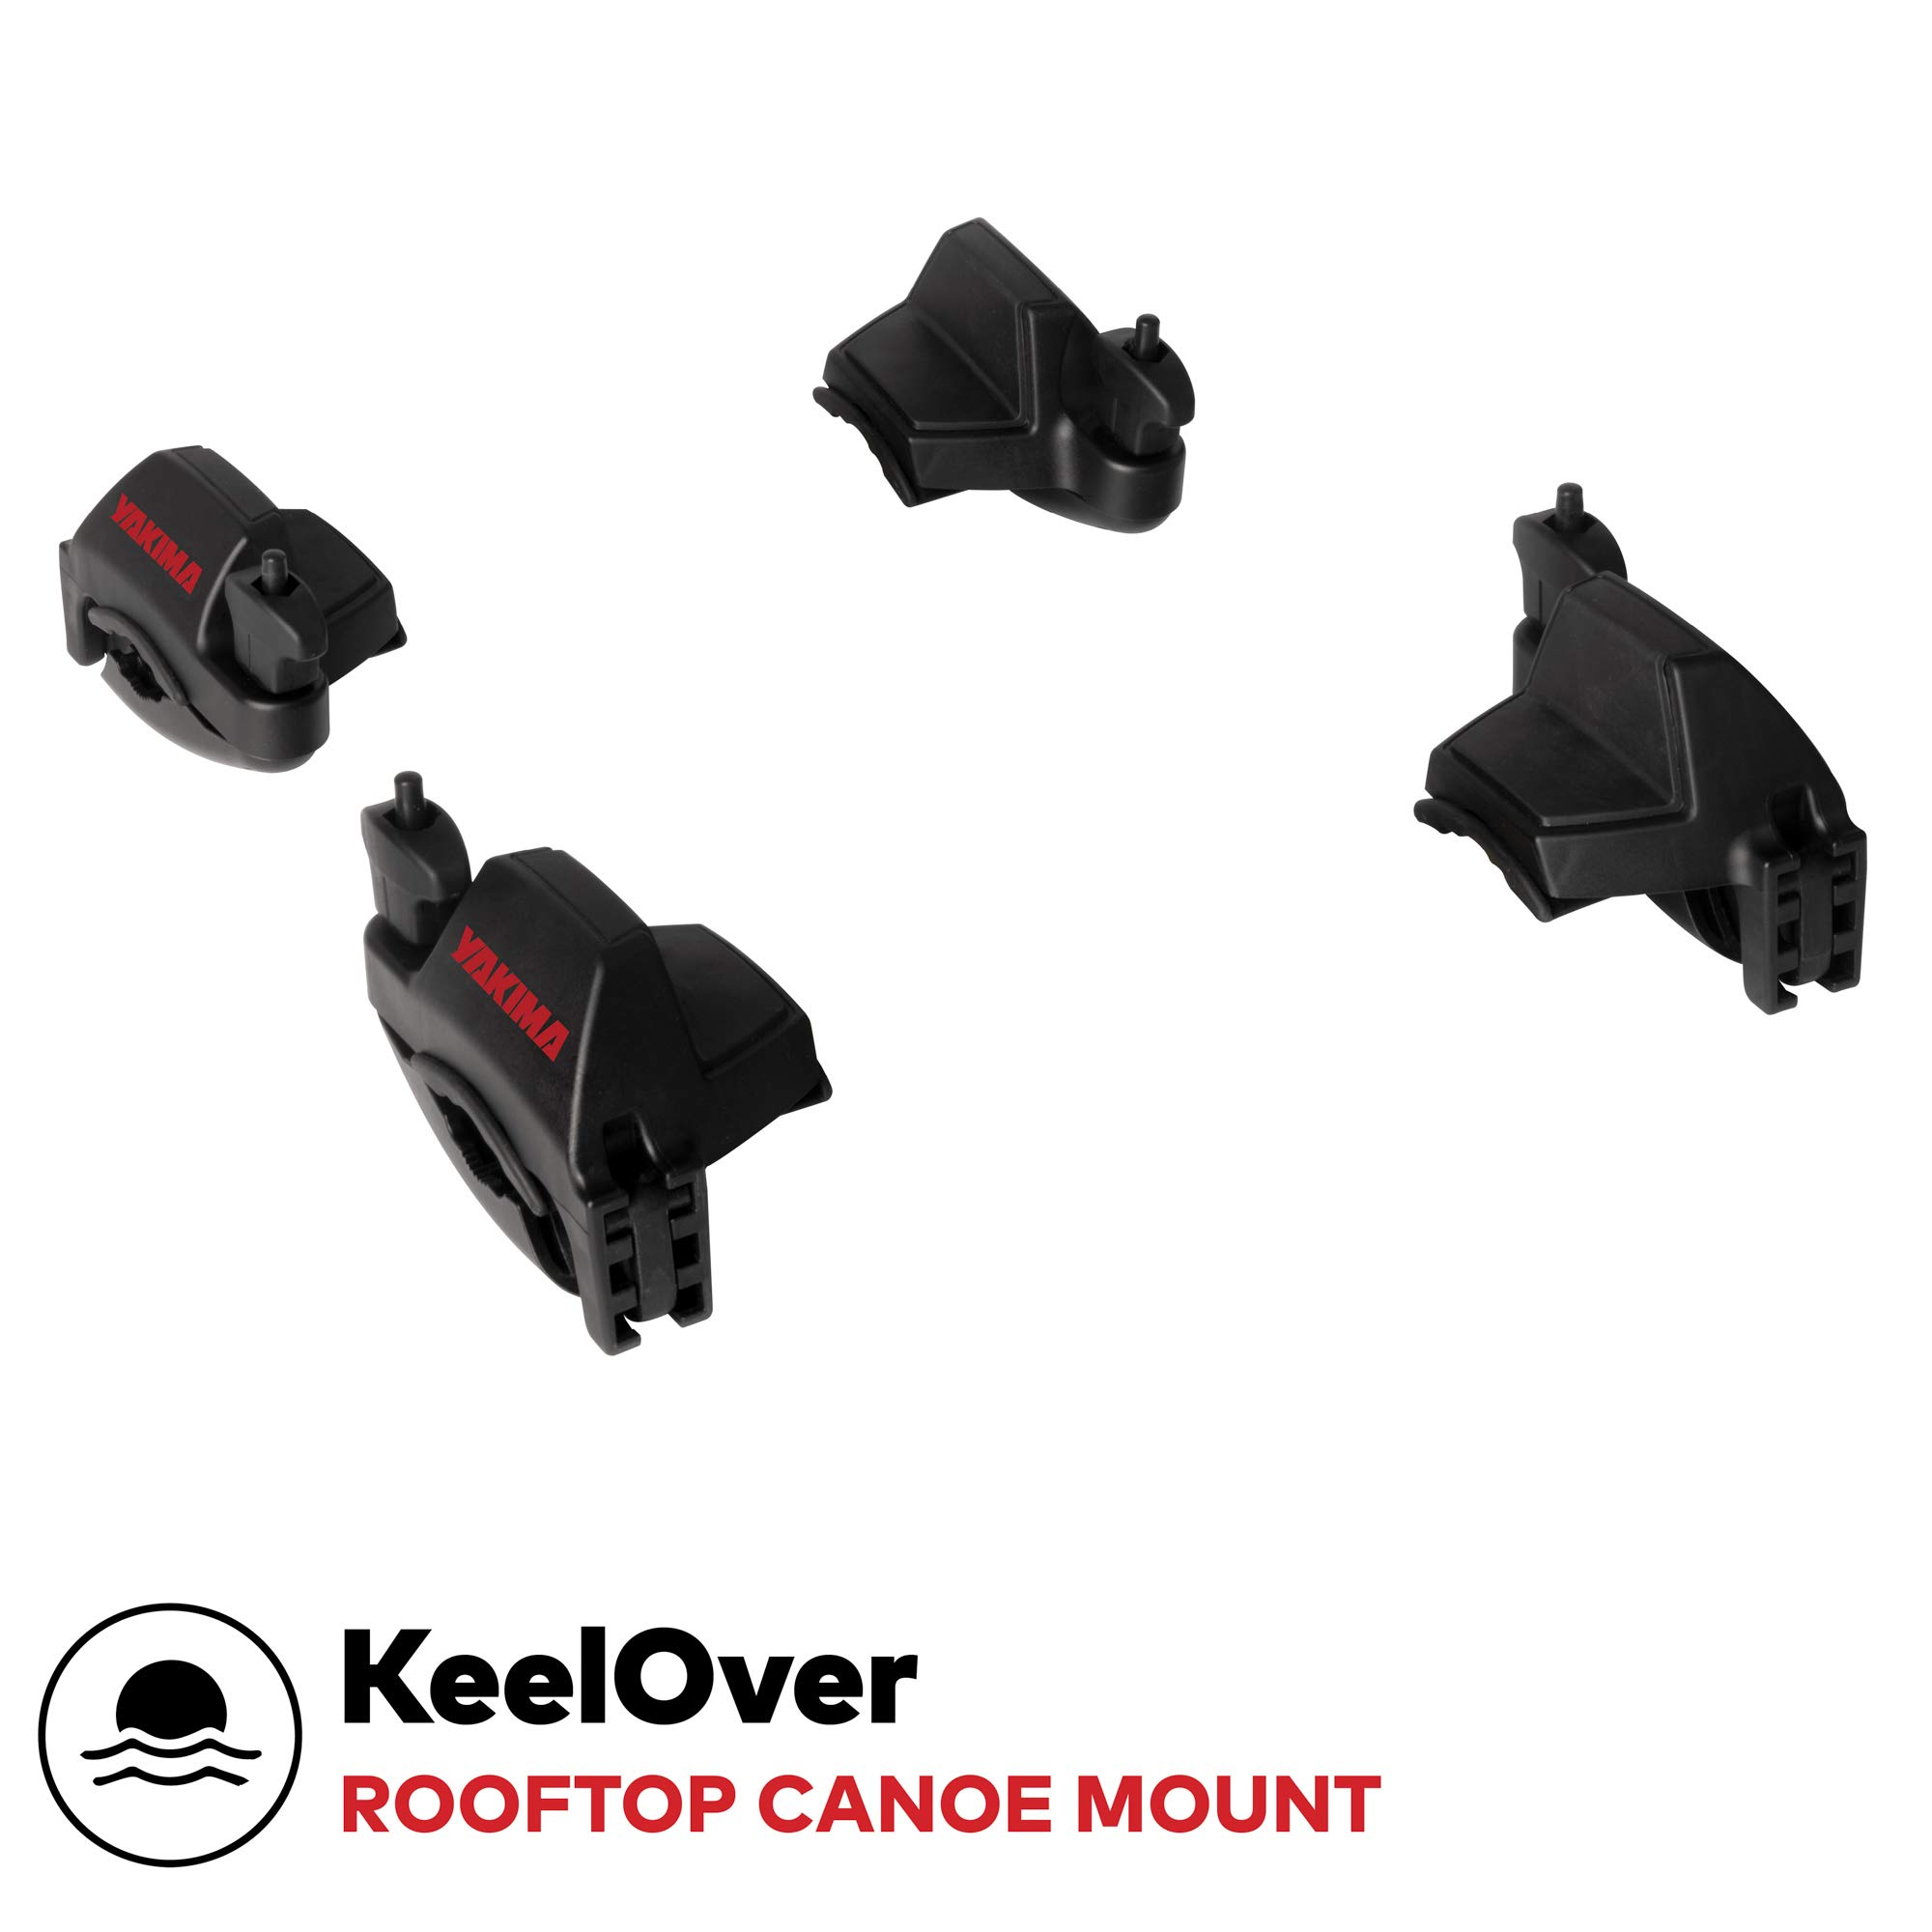 Yakima - KeelOver Rooftop Mounted Canoe Rack for Vehicles, Carries 1 Canoe by Yakima